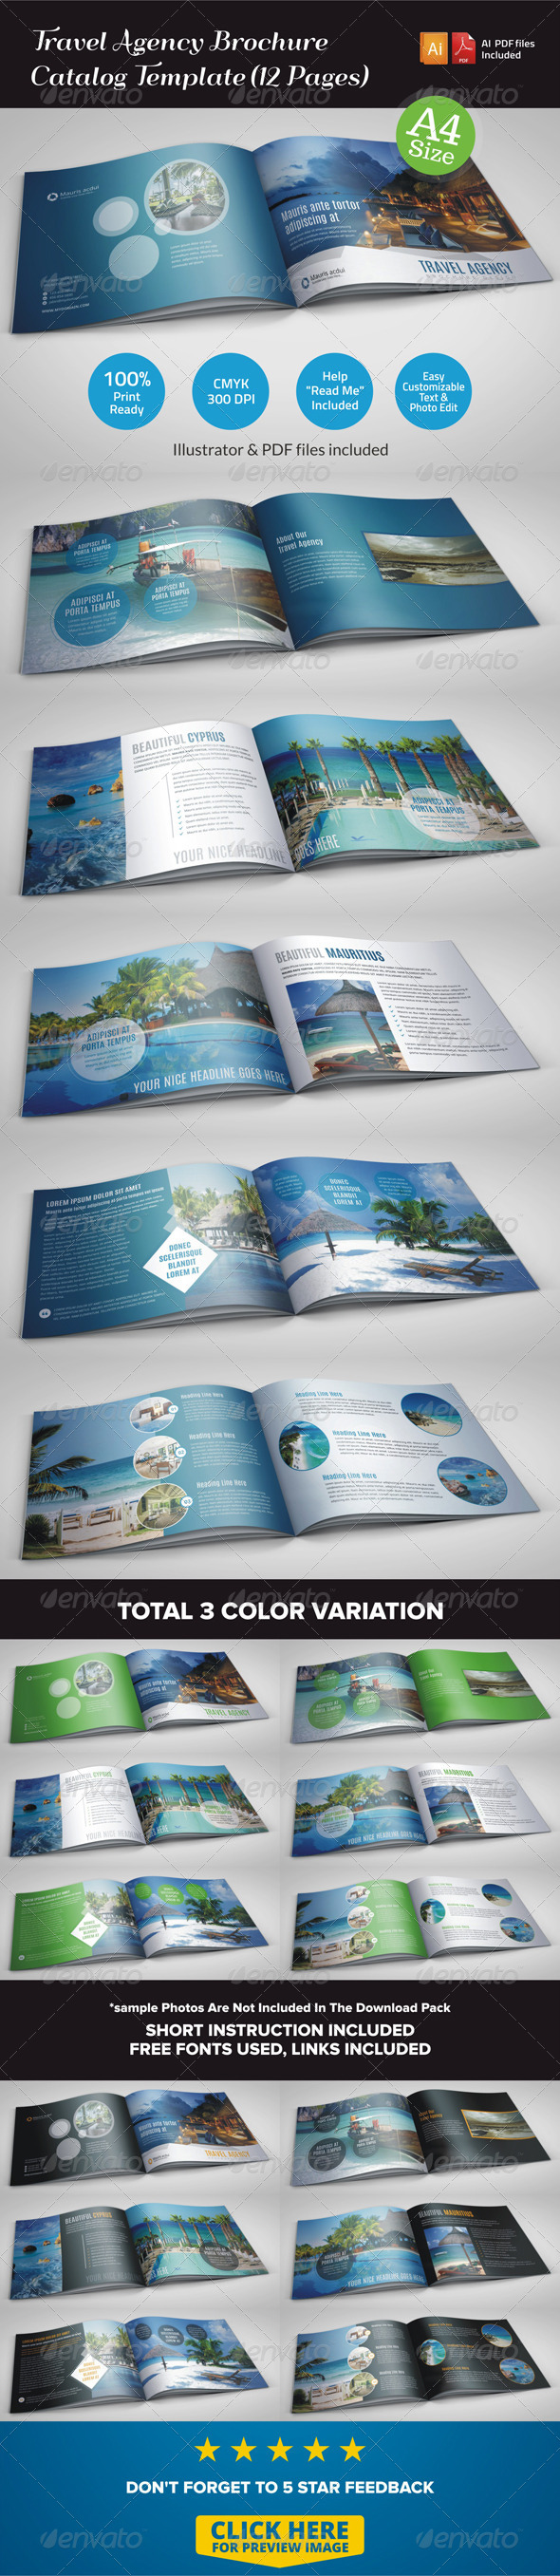 GraphicRiver Travel Agency Brochure Catalog Template 12 Pages 6925114